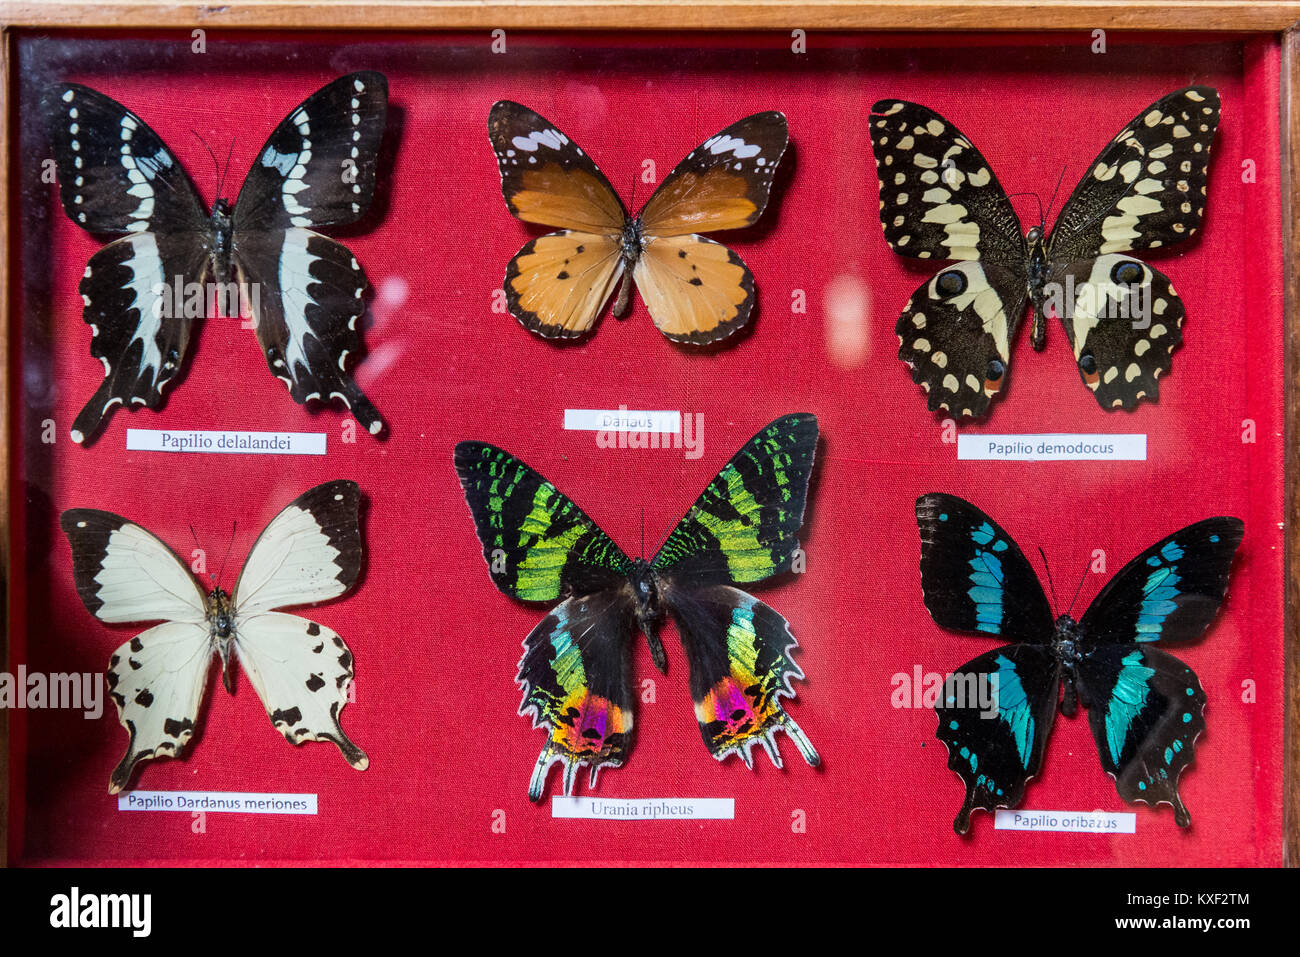 Framed specimen of colorful butterflies for sell in a local souvenir store. Madagascar, Africa. - Stock Image